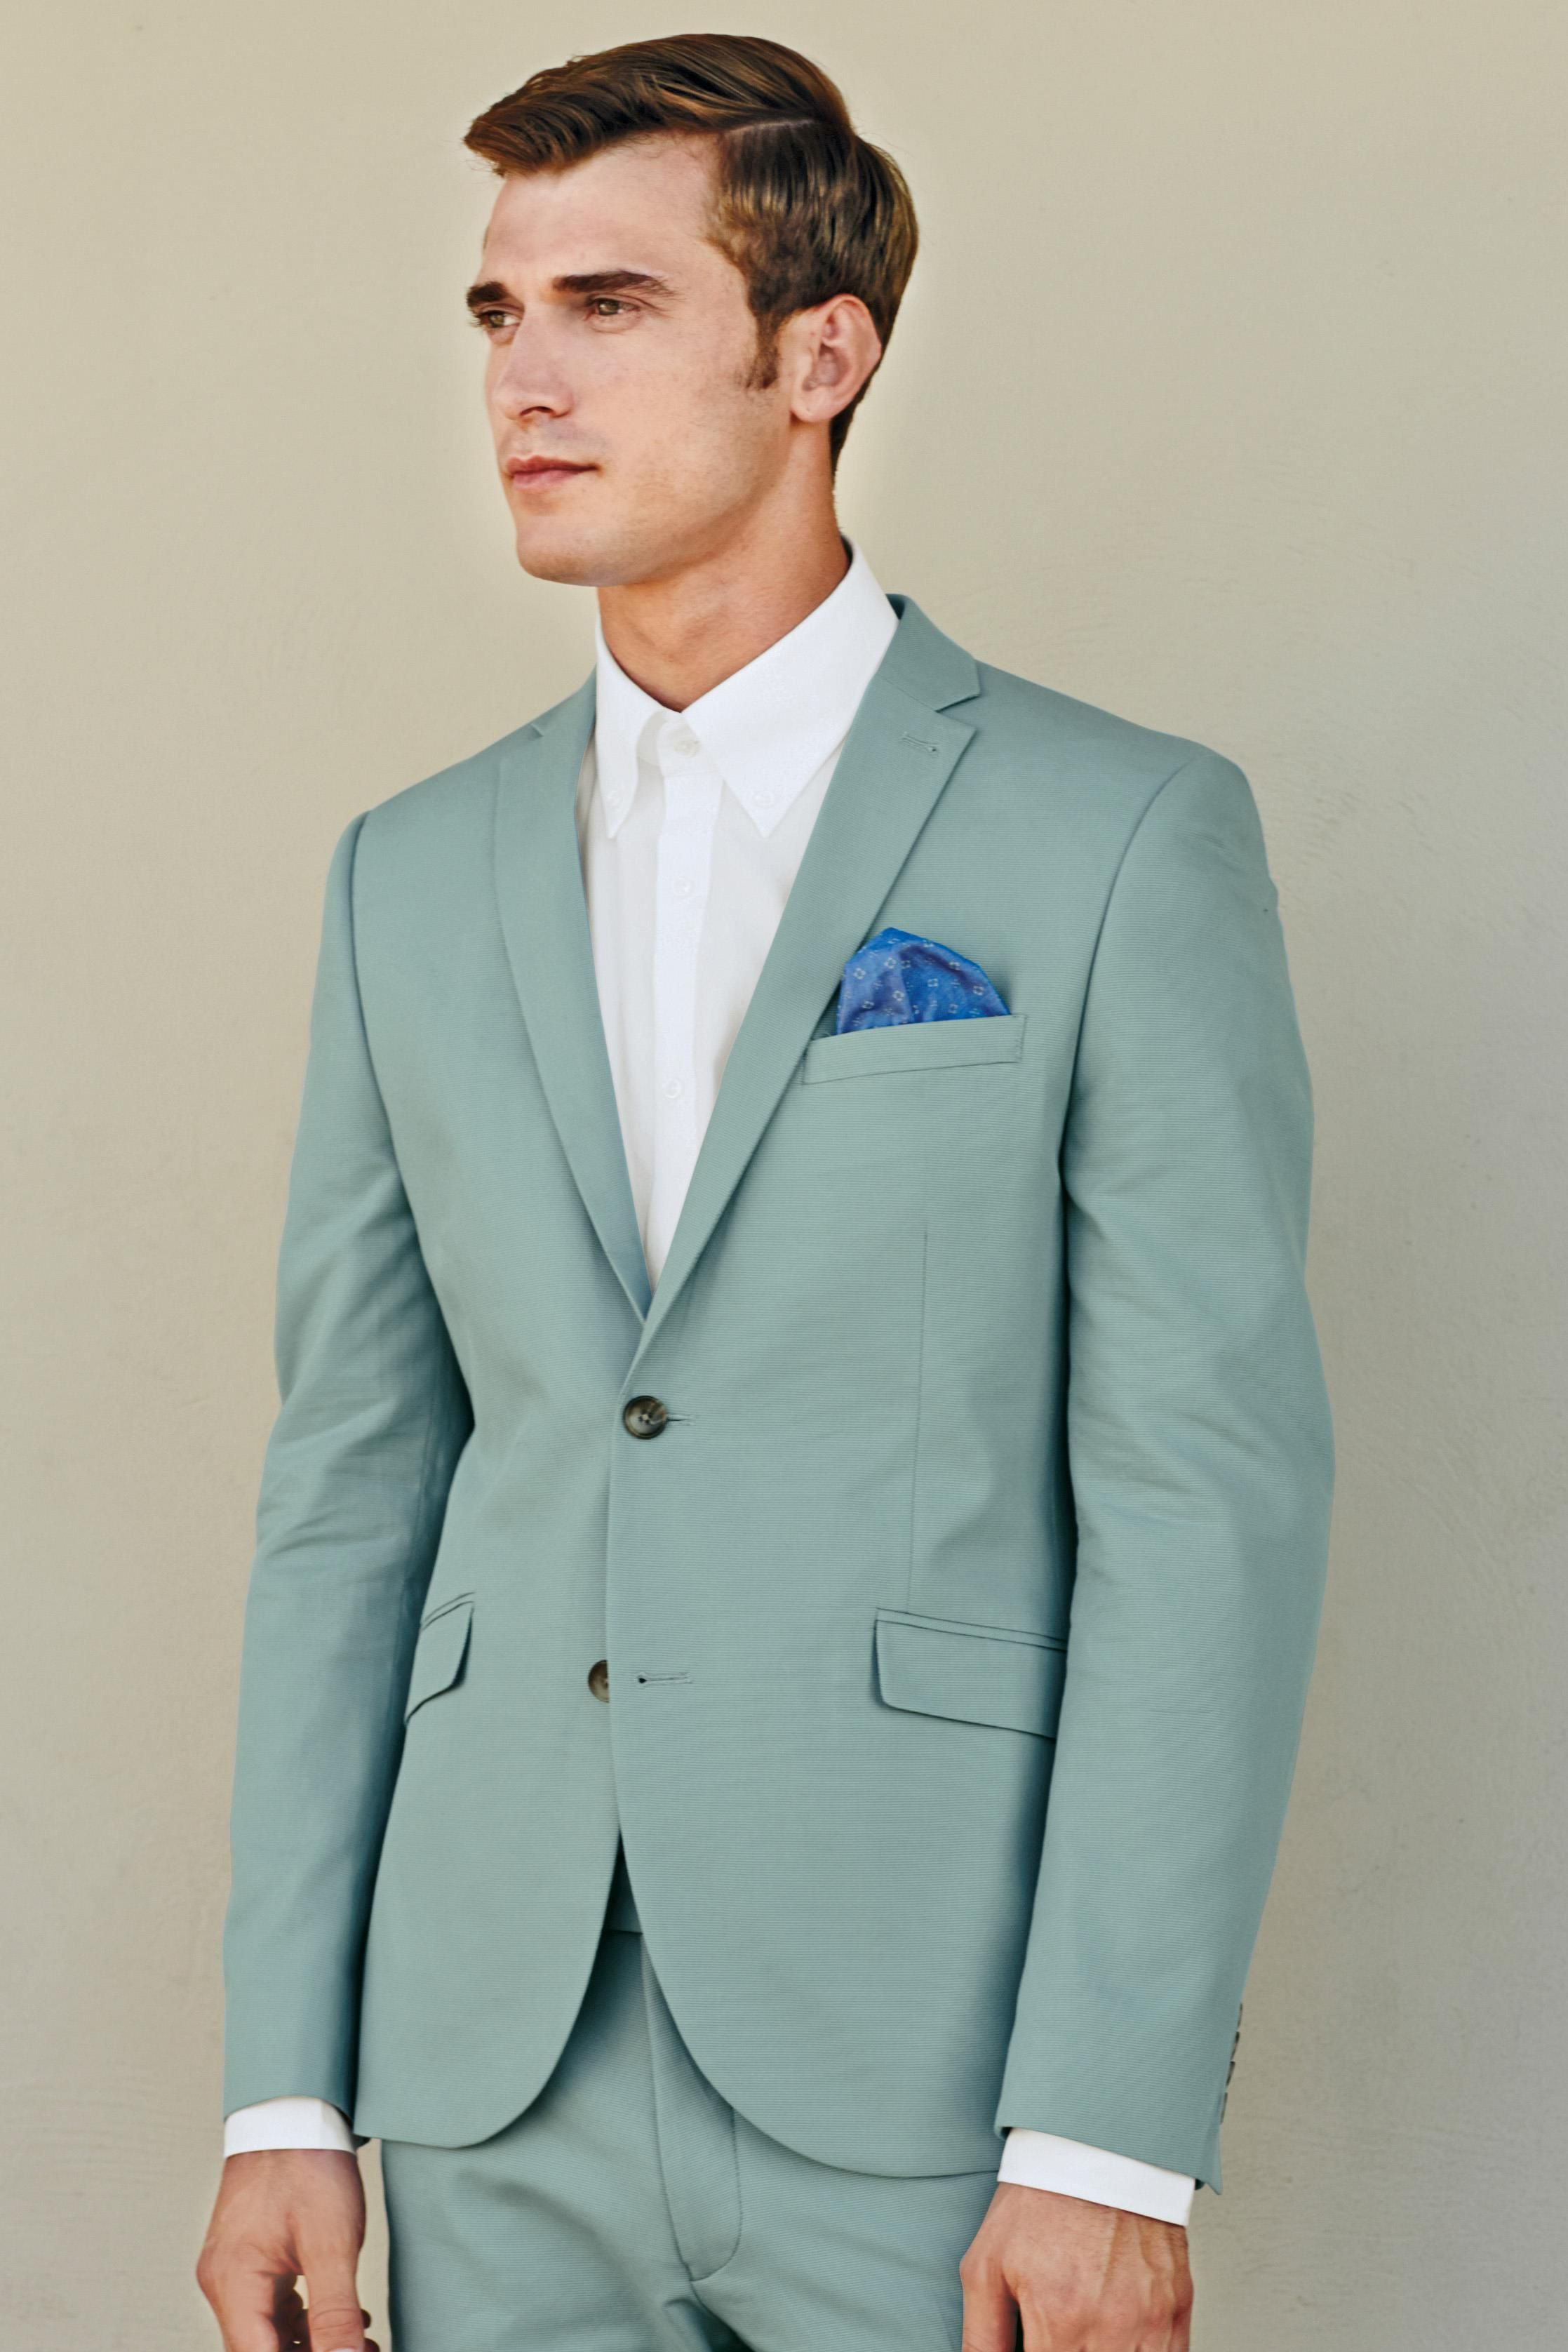 Enchanting Wedding Suits For Men White Elaboration - All Wedding ...